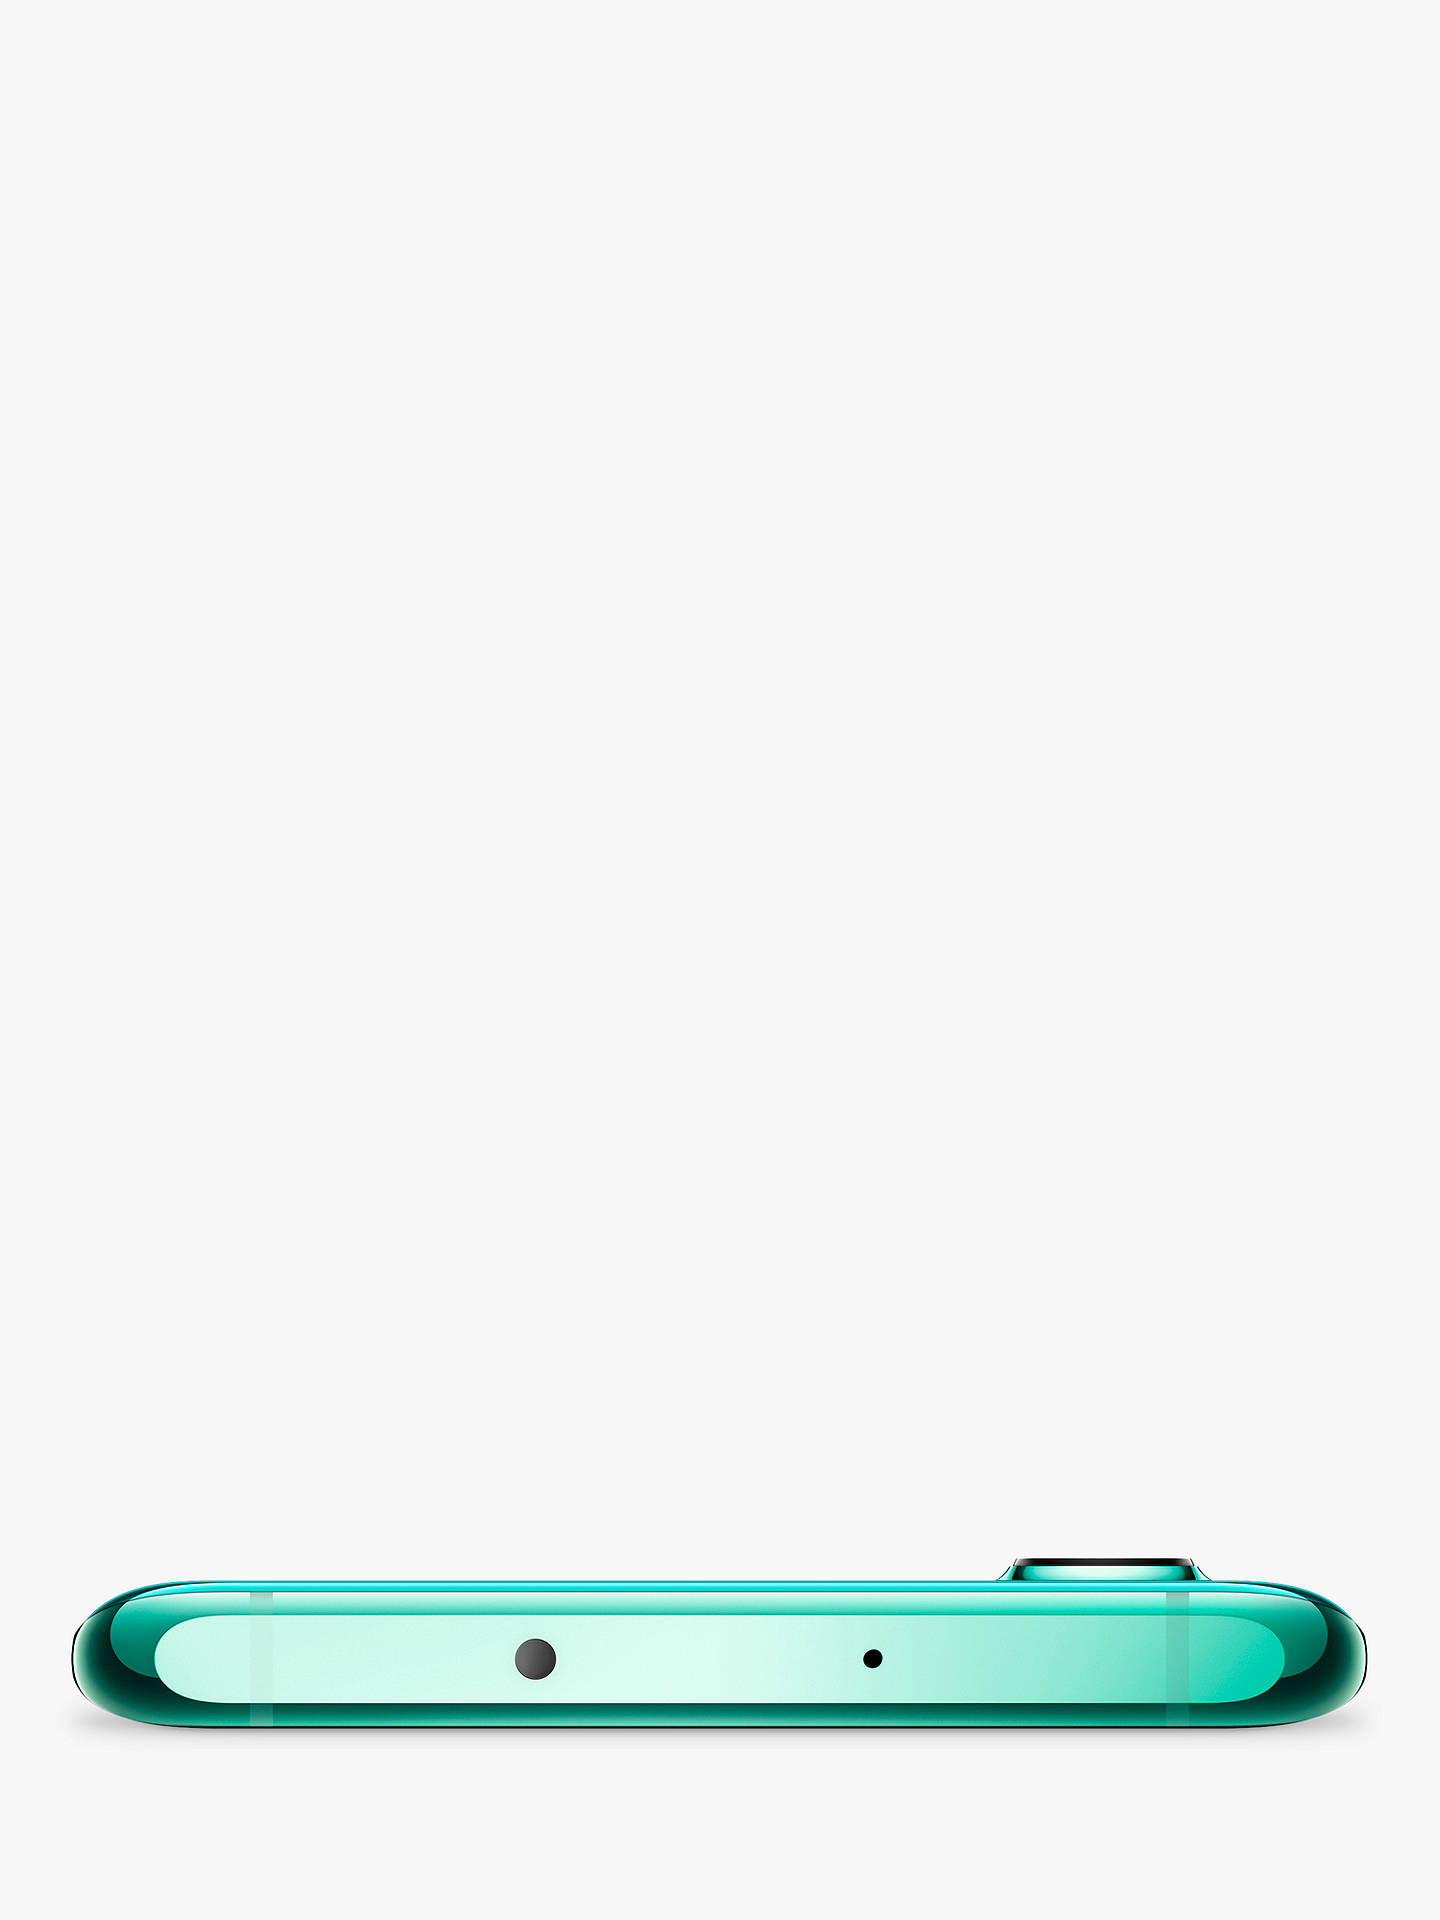 "Buy Huawei P30 Pro 8+ with Reverse Wireless Charge, Android, 8GB RAM, 6.47"", 4G LTE, SIM Free, 128GB, Aurora Online at johnlewis.com"